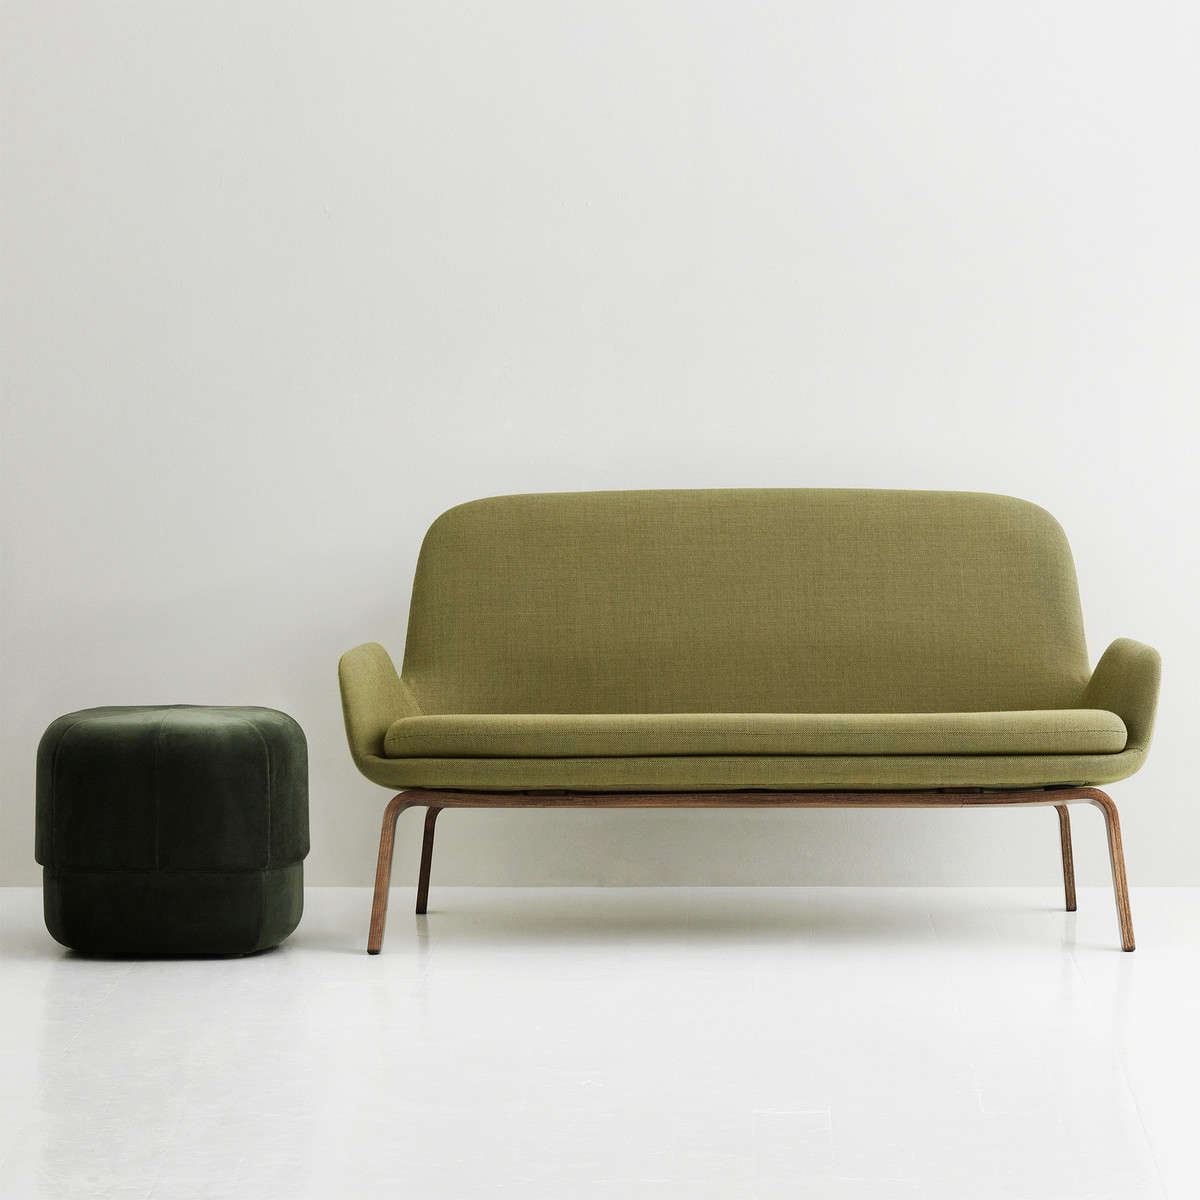 10 Easy Pieces: The New Nordic Sofa